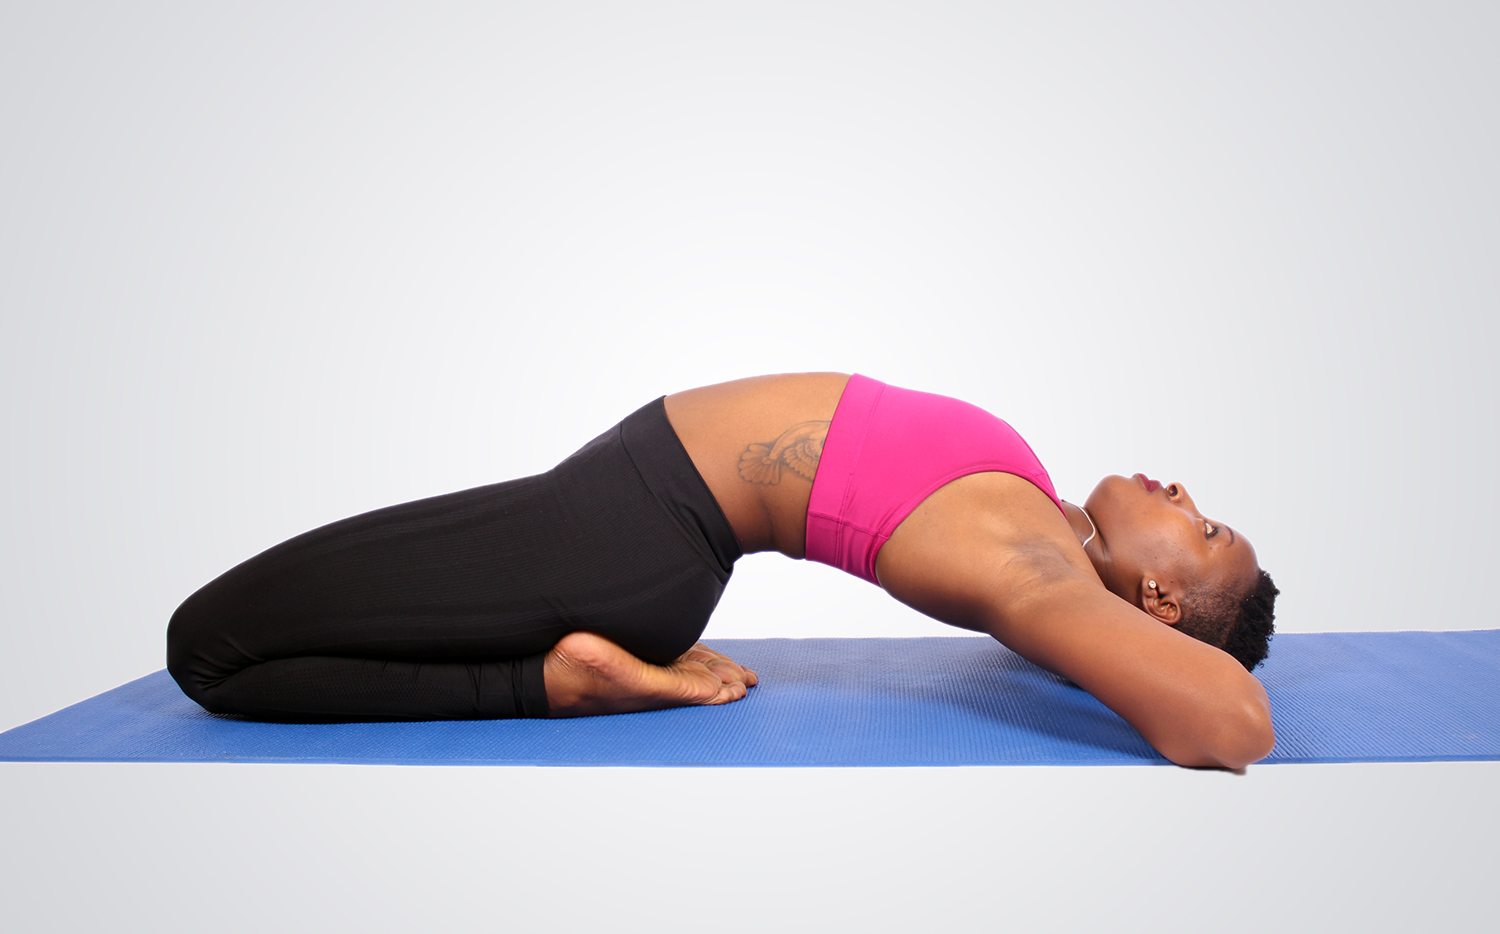 Woman with tattoo practicing yoga